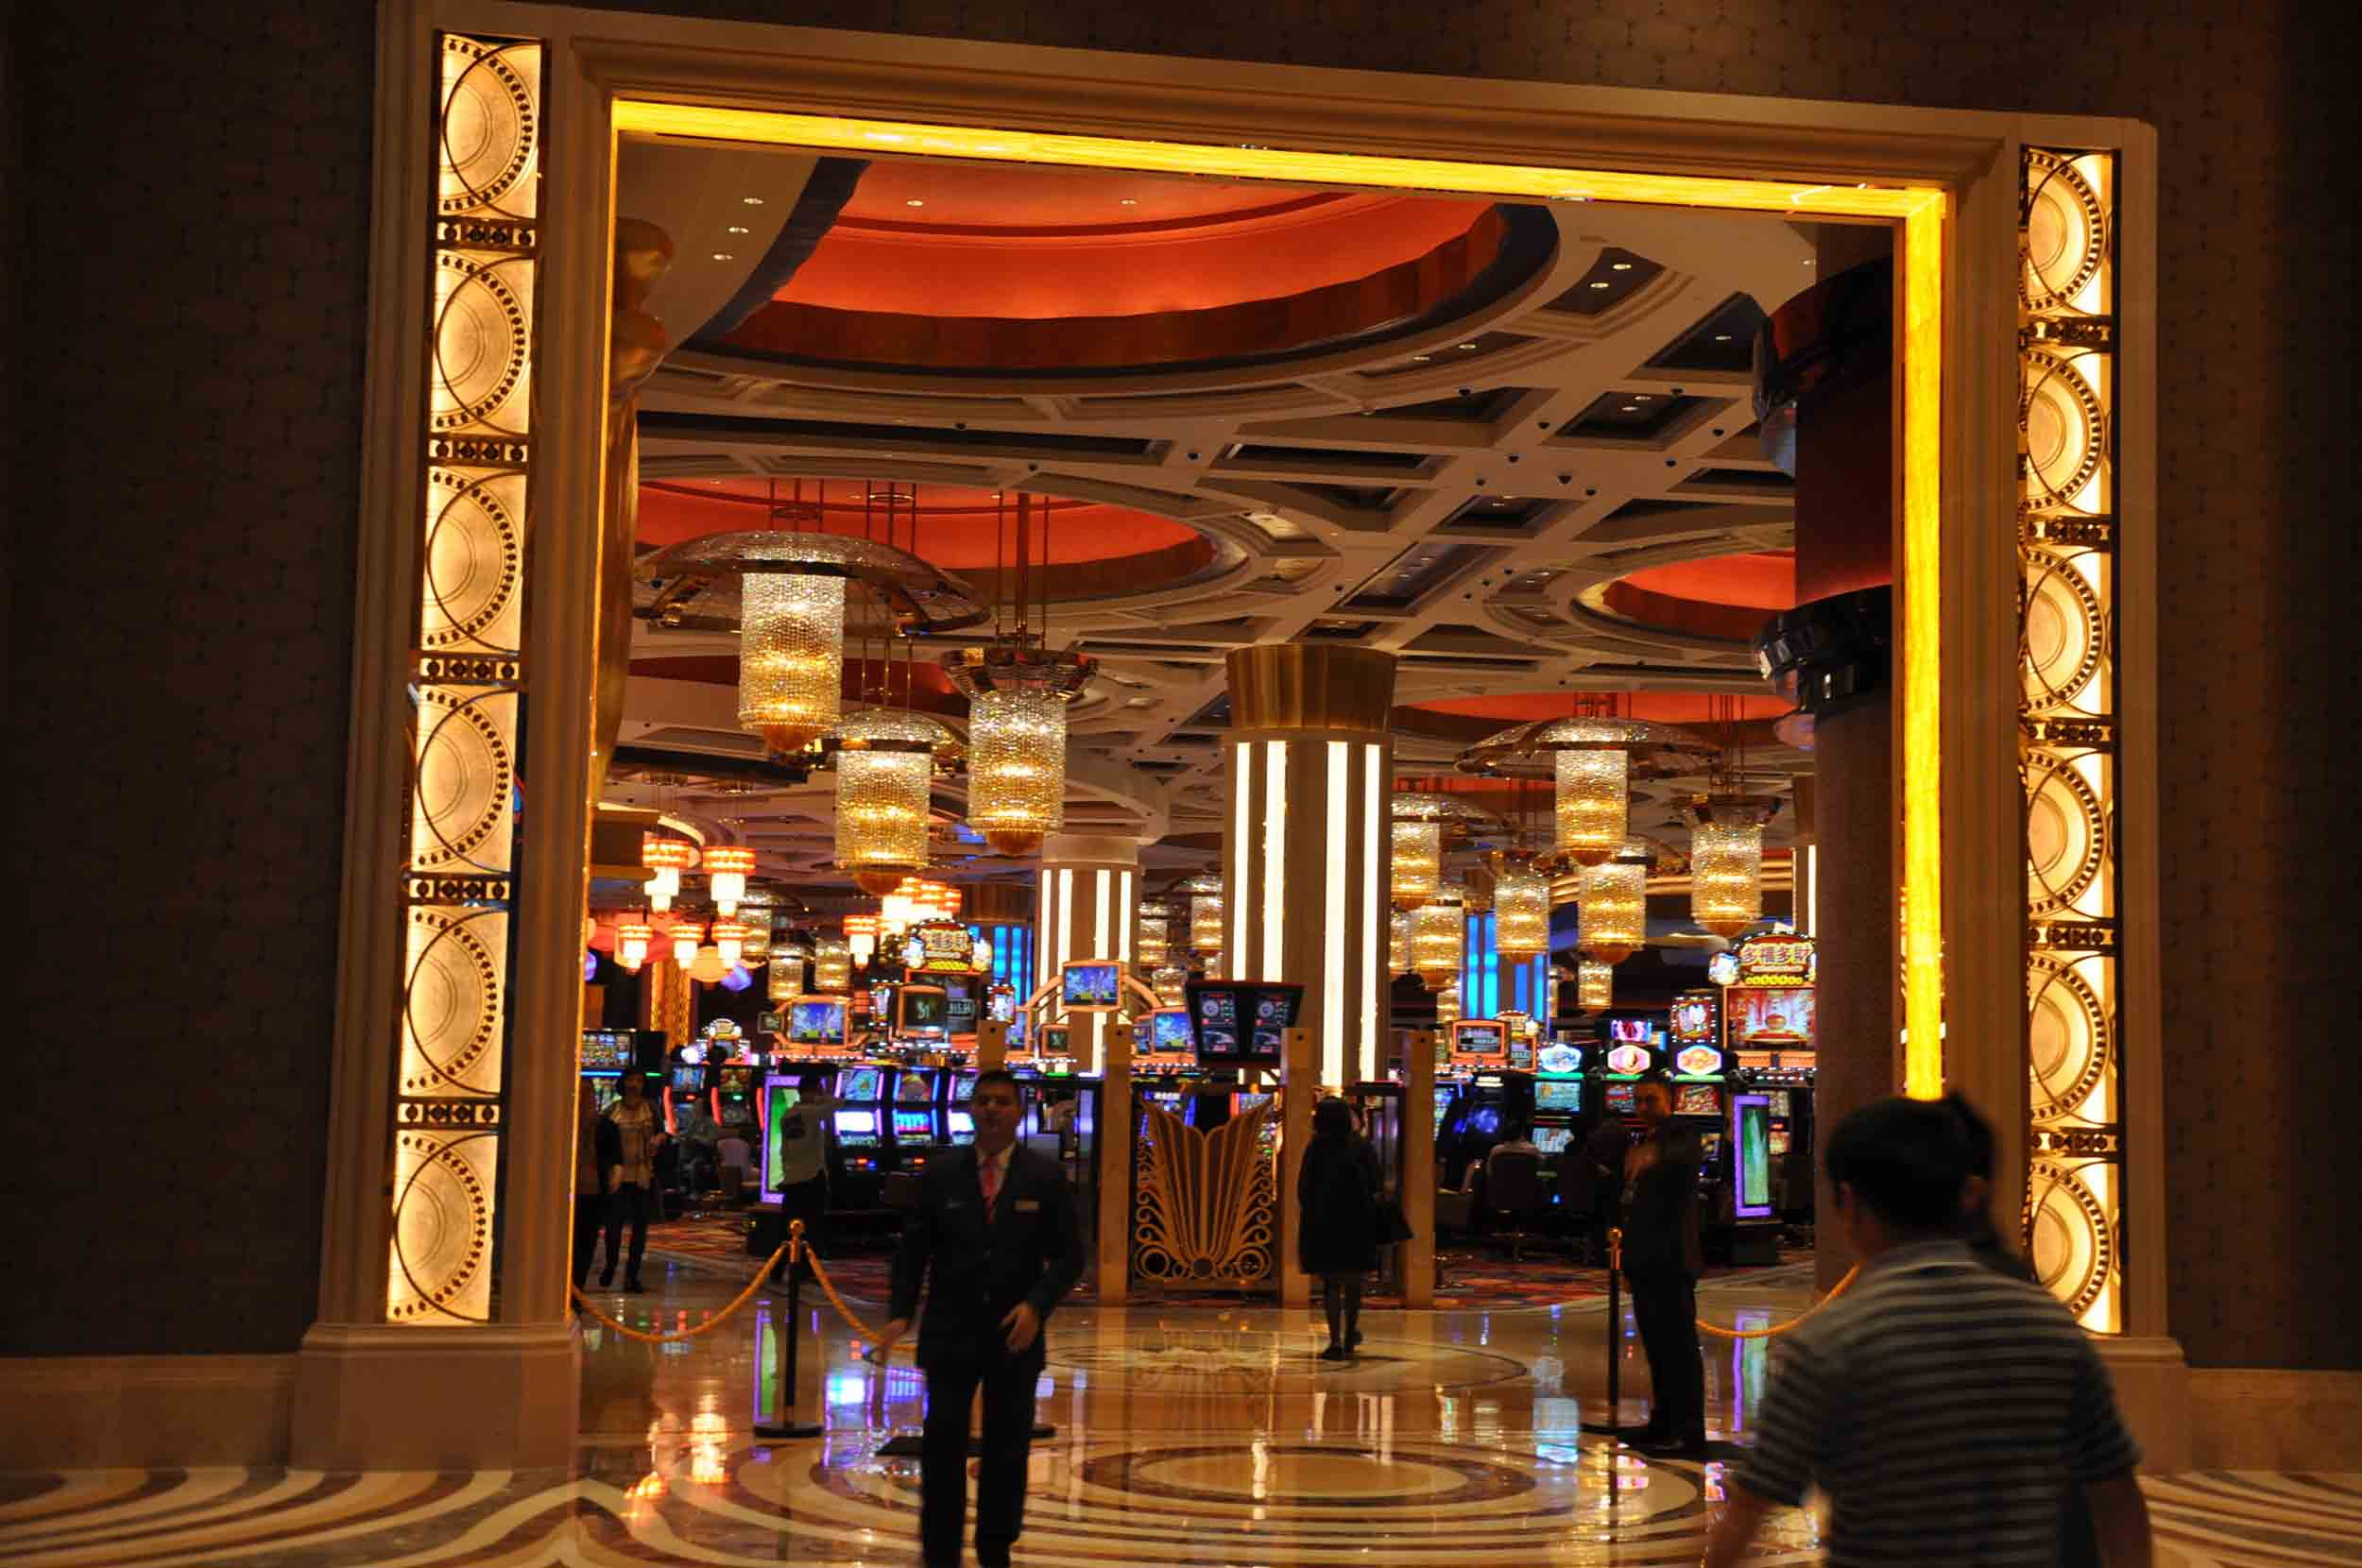 Studio City Macau casino